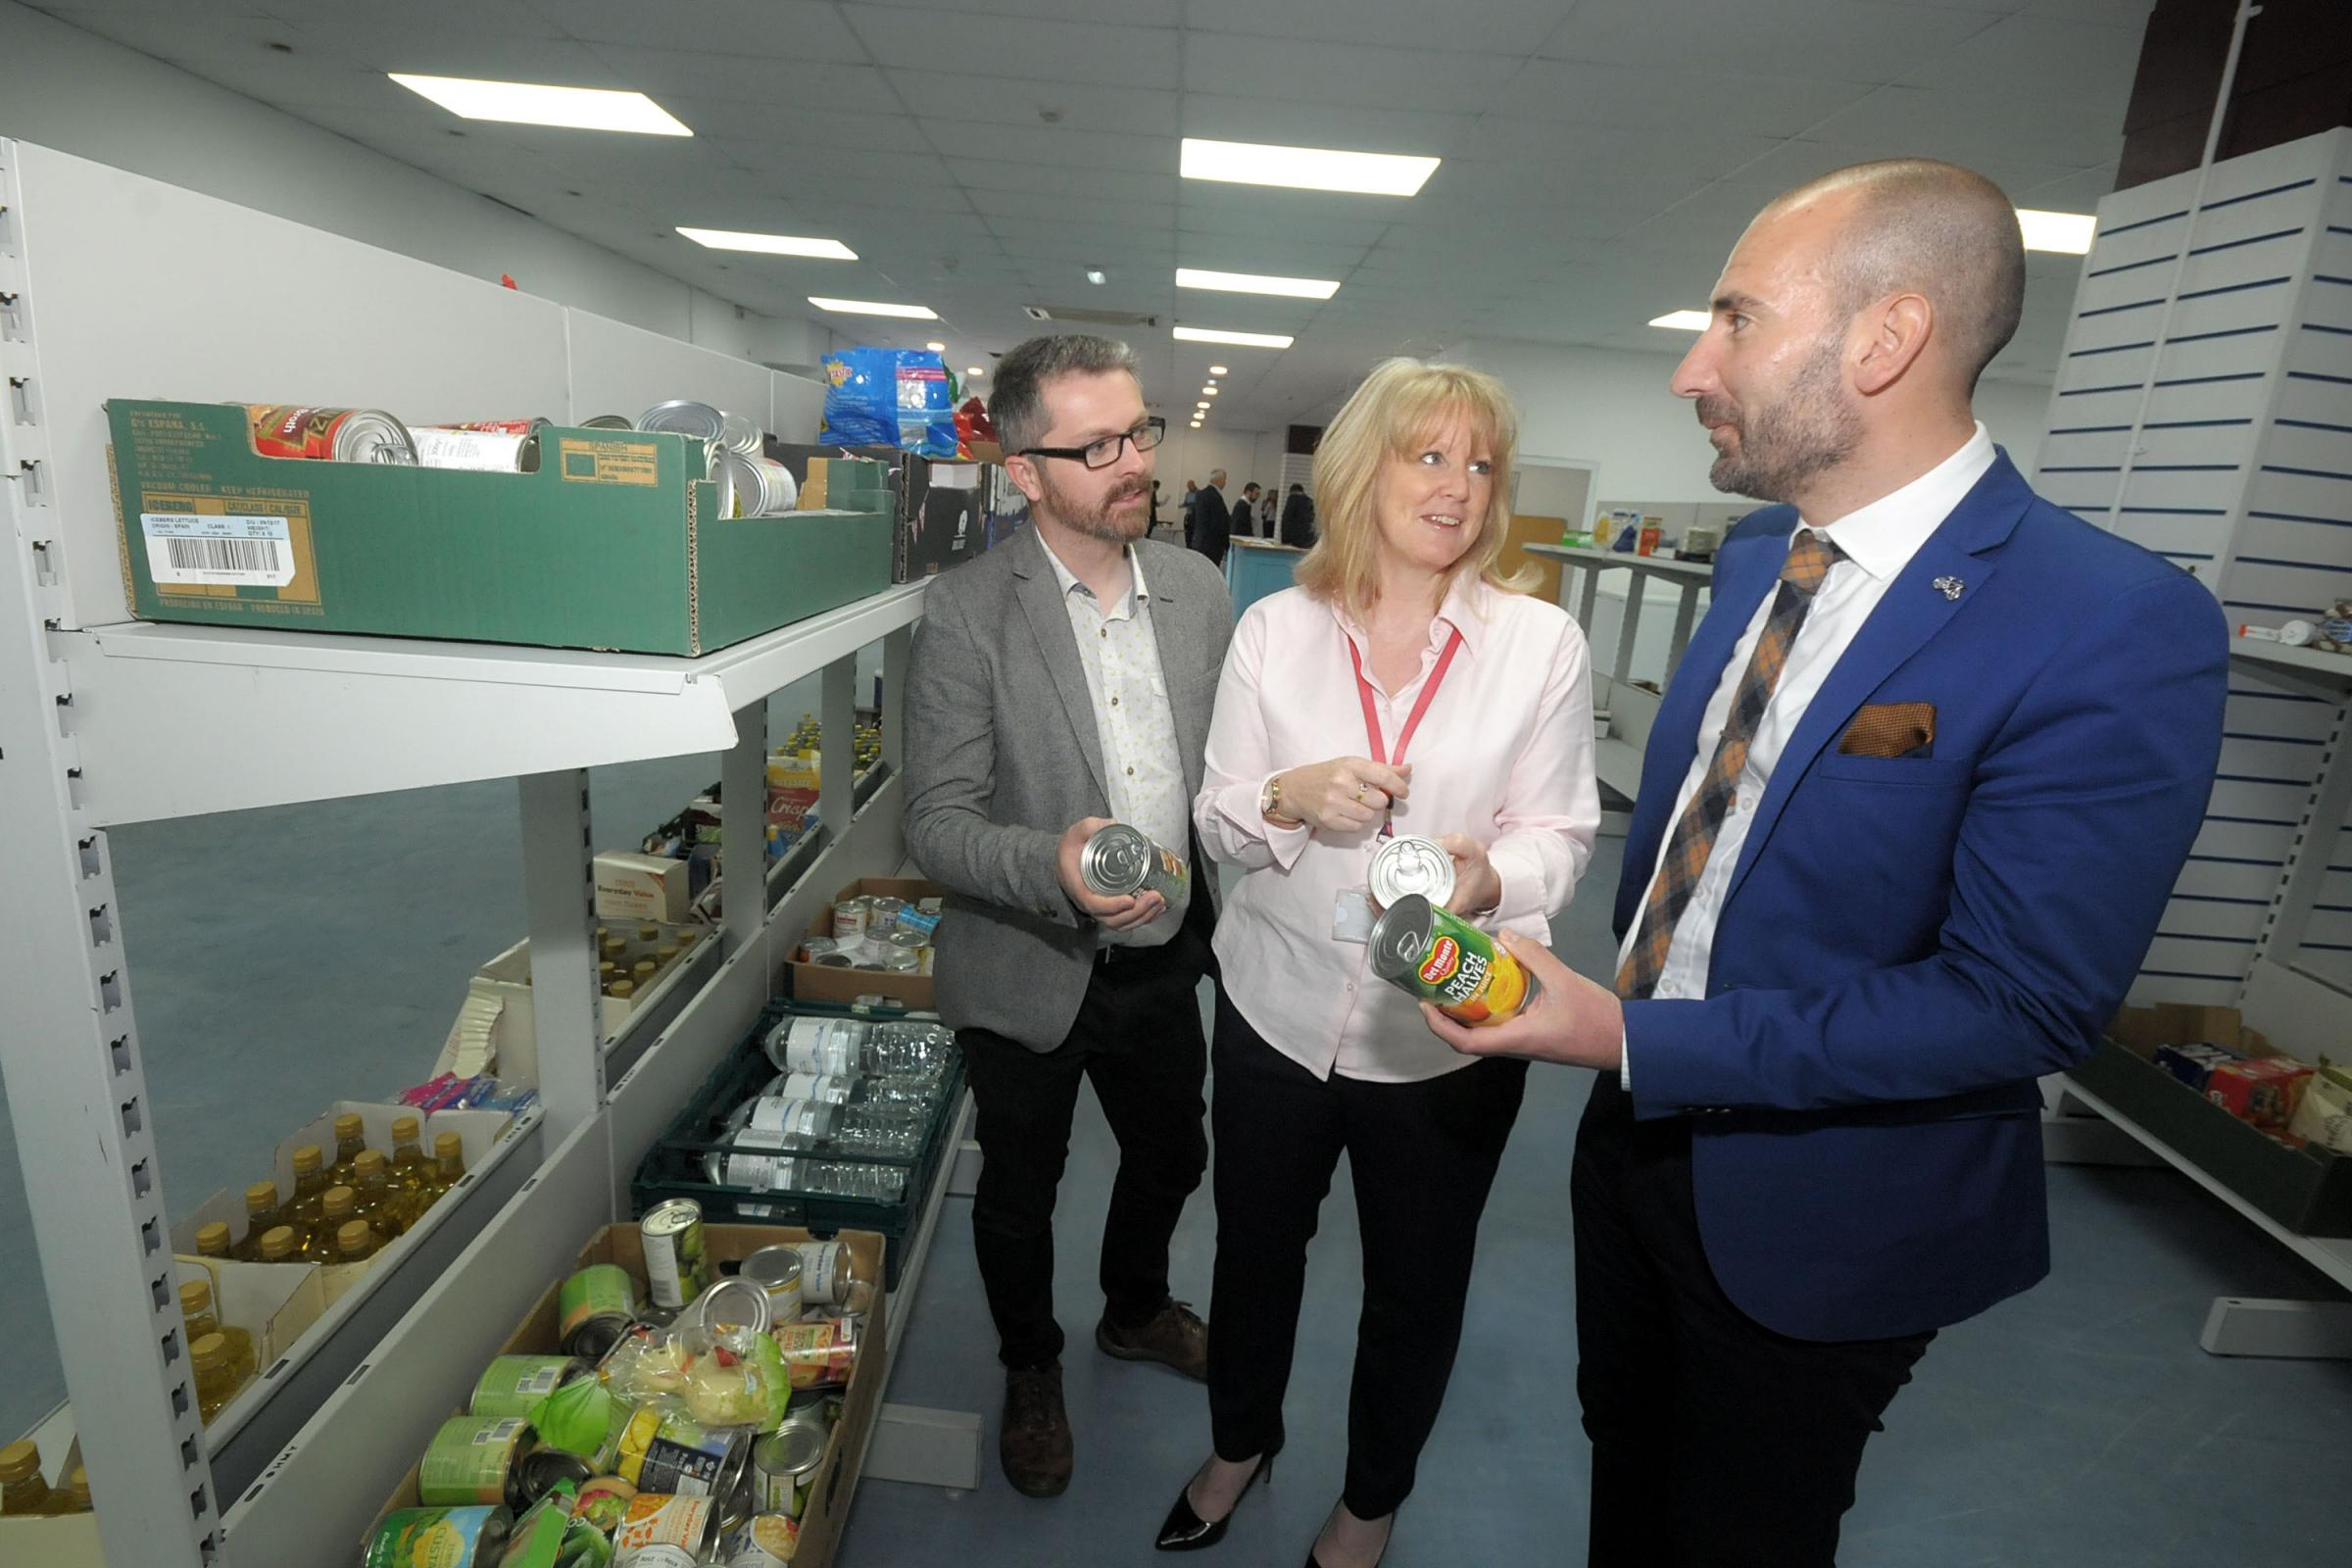 Burnley FC Kitchen opens for viewing as part of Burnley Business Week (pictured: Community Kitchen Manager Anita Orchard spaeks with council business support officer Martin Hardacre and PM&M Wealth Manager Neil Walsh in the food bank area)